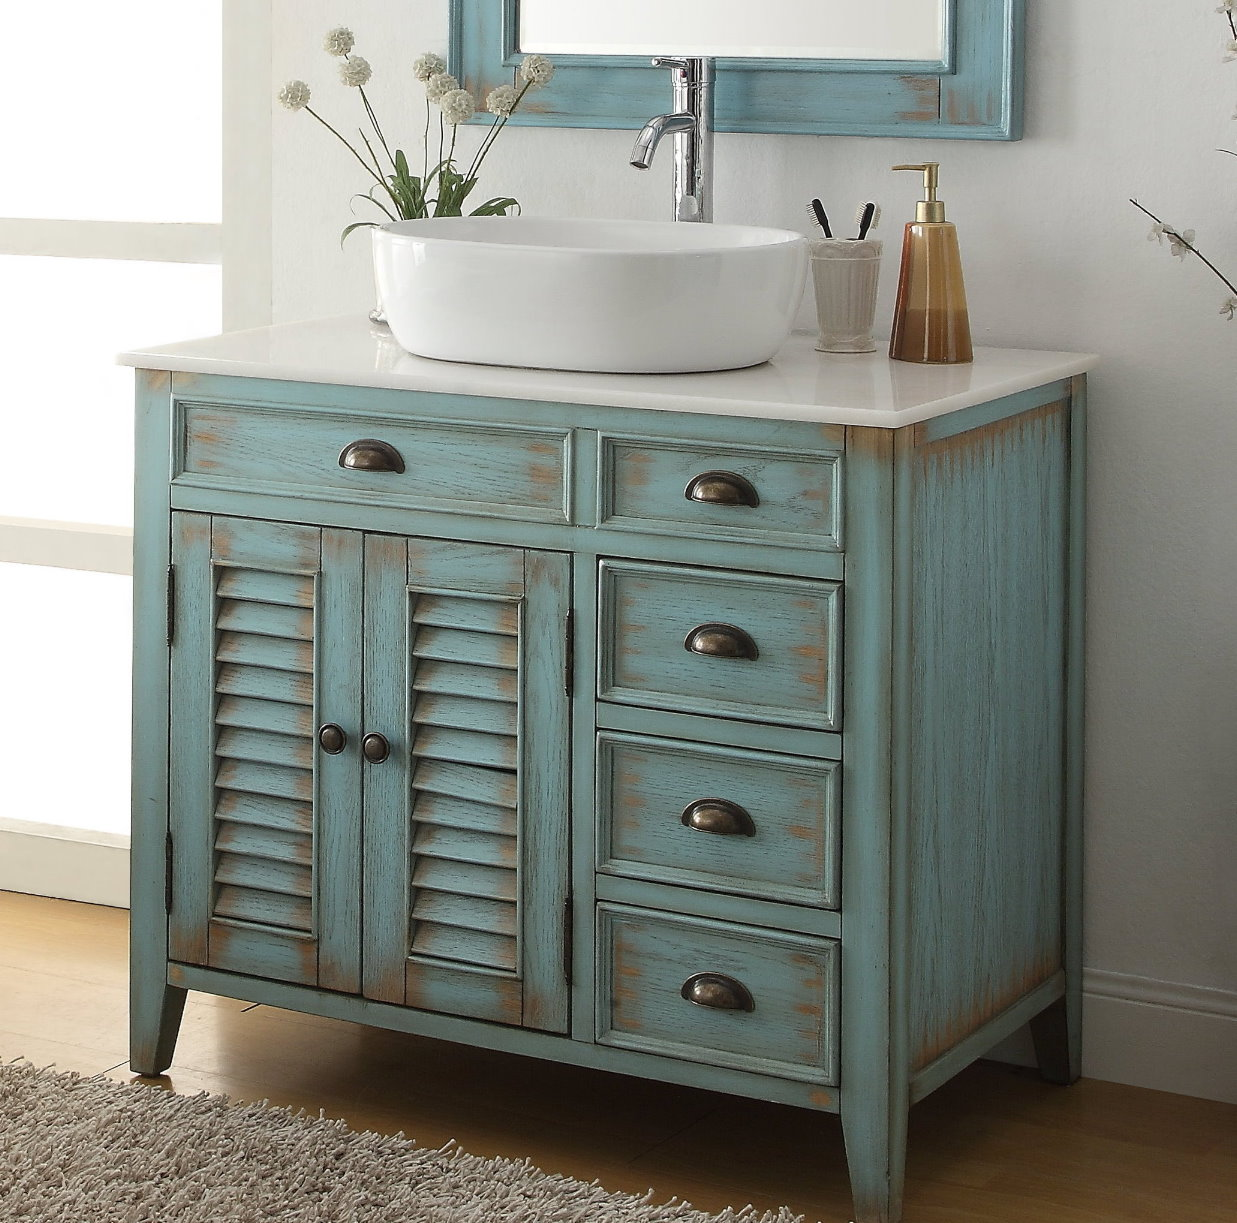 "Beach Style Bathroom Vanity 36"" Inch Bathroom Vanity Coastal Beach Style White Vessel"